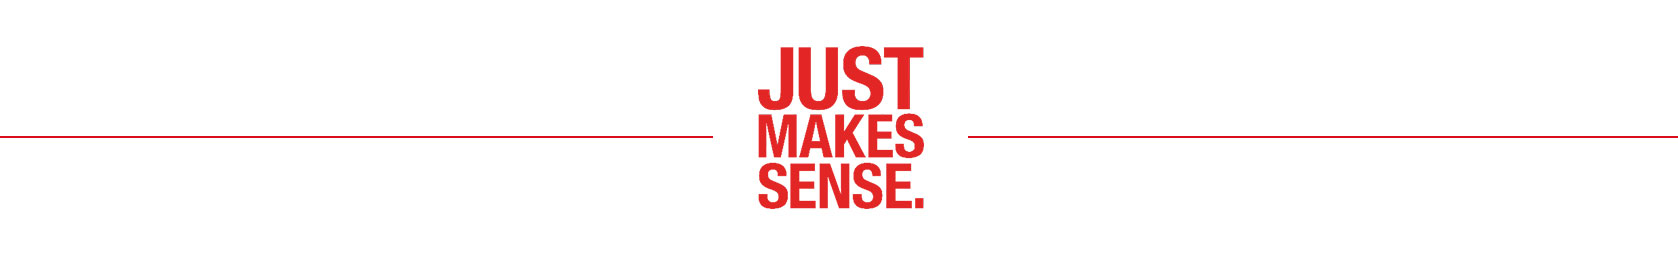 Just makes sense logo